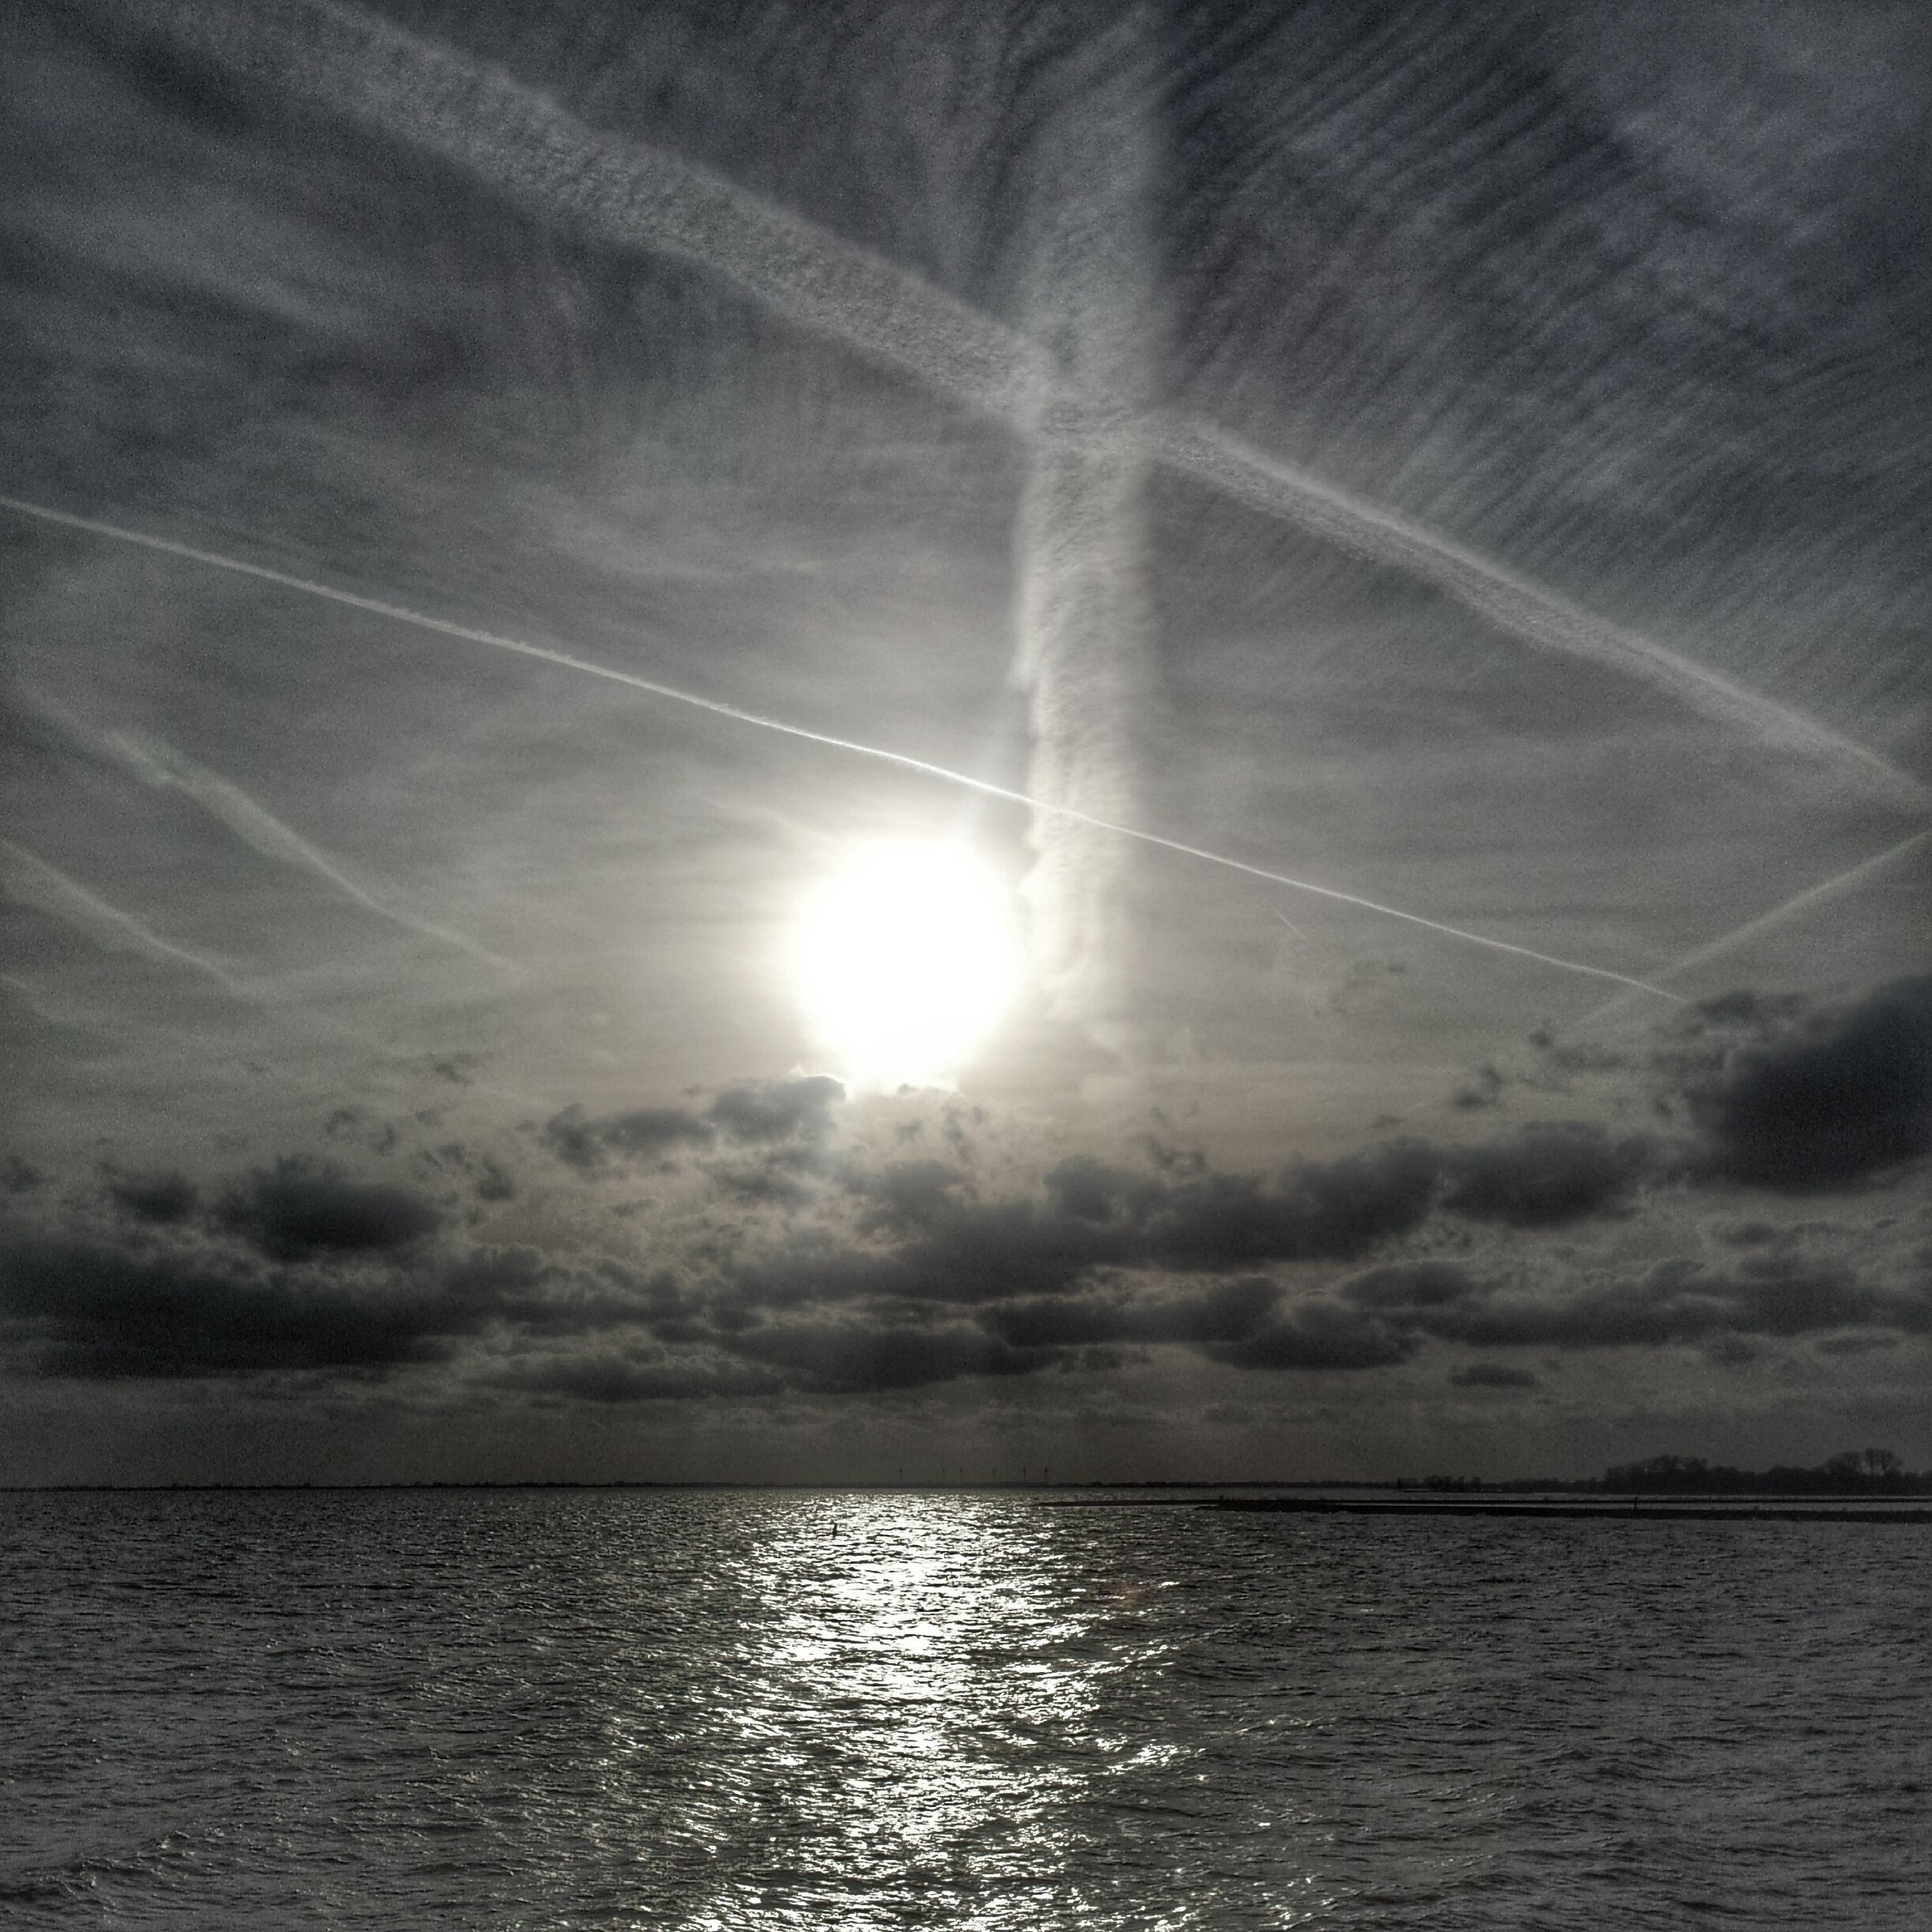 water, scenics, sun, tranquil scene, tranquility, beauty in nature, sky, sea, waterfront, reflection, nature, cloud - sky, sunlight, sunbeam, idyllic, horizon over water, sunset, cloud, outdoors, rippled